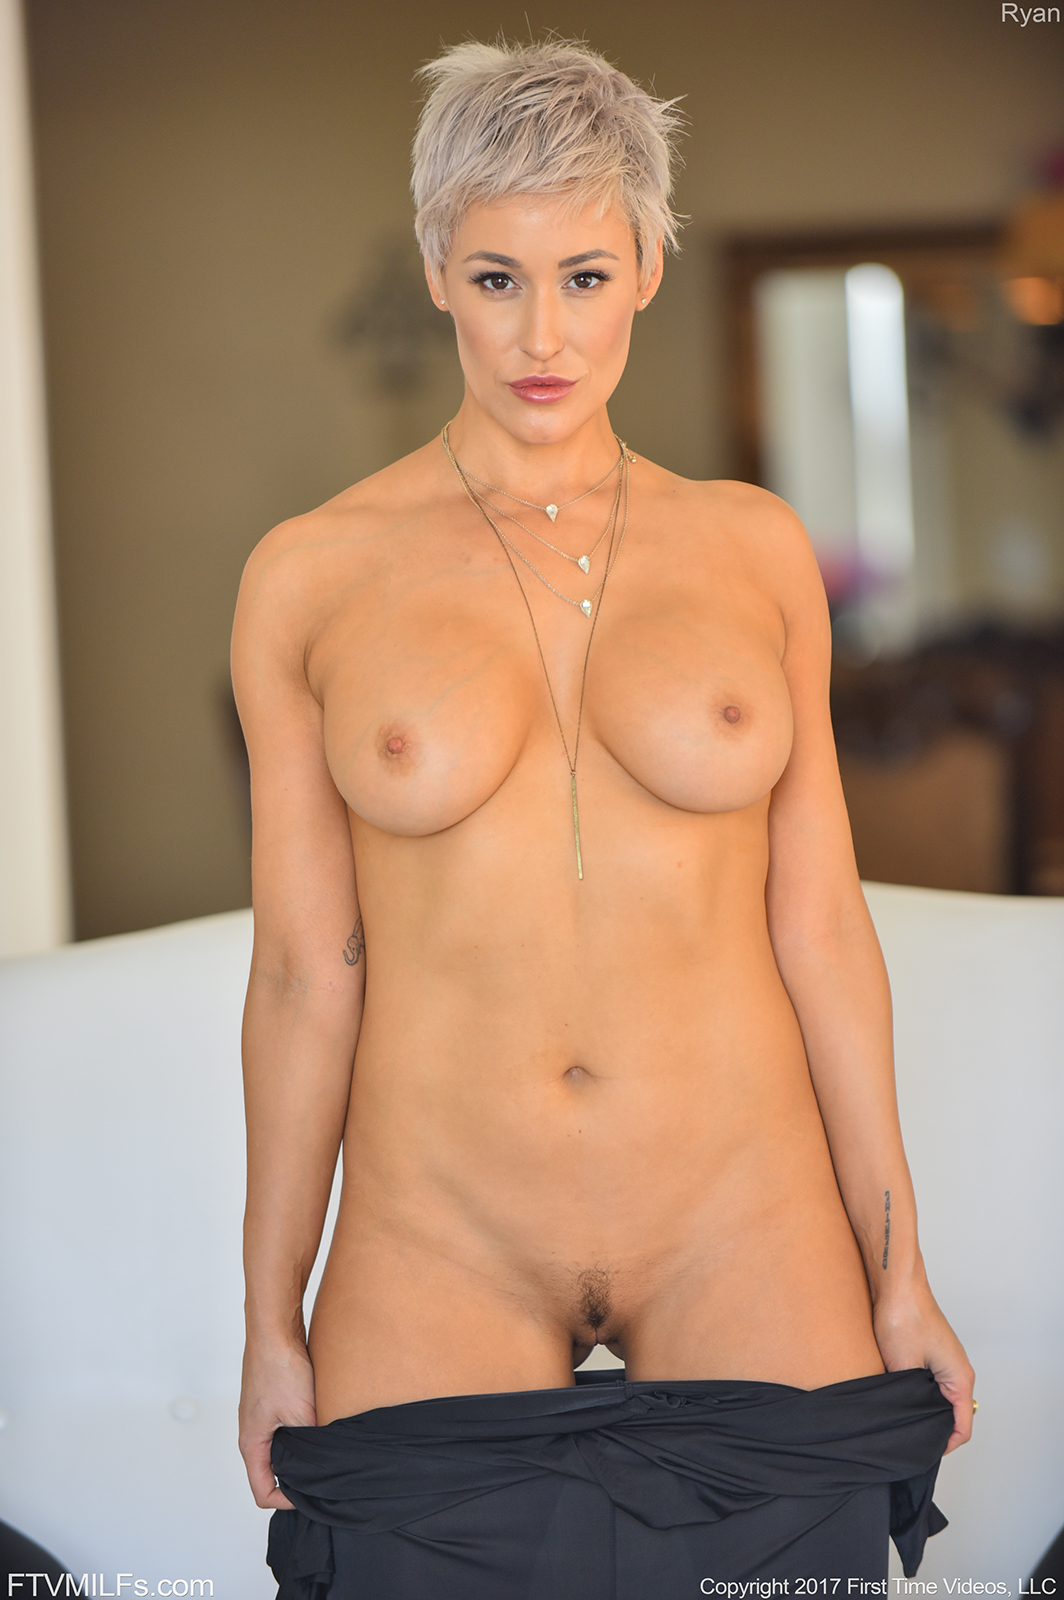 What's The Name Of This Young Teen Porn Star With A White Bra And Short Hair